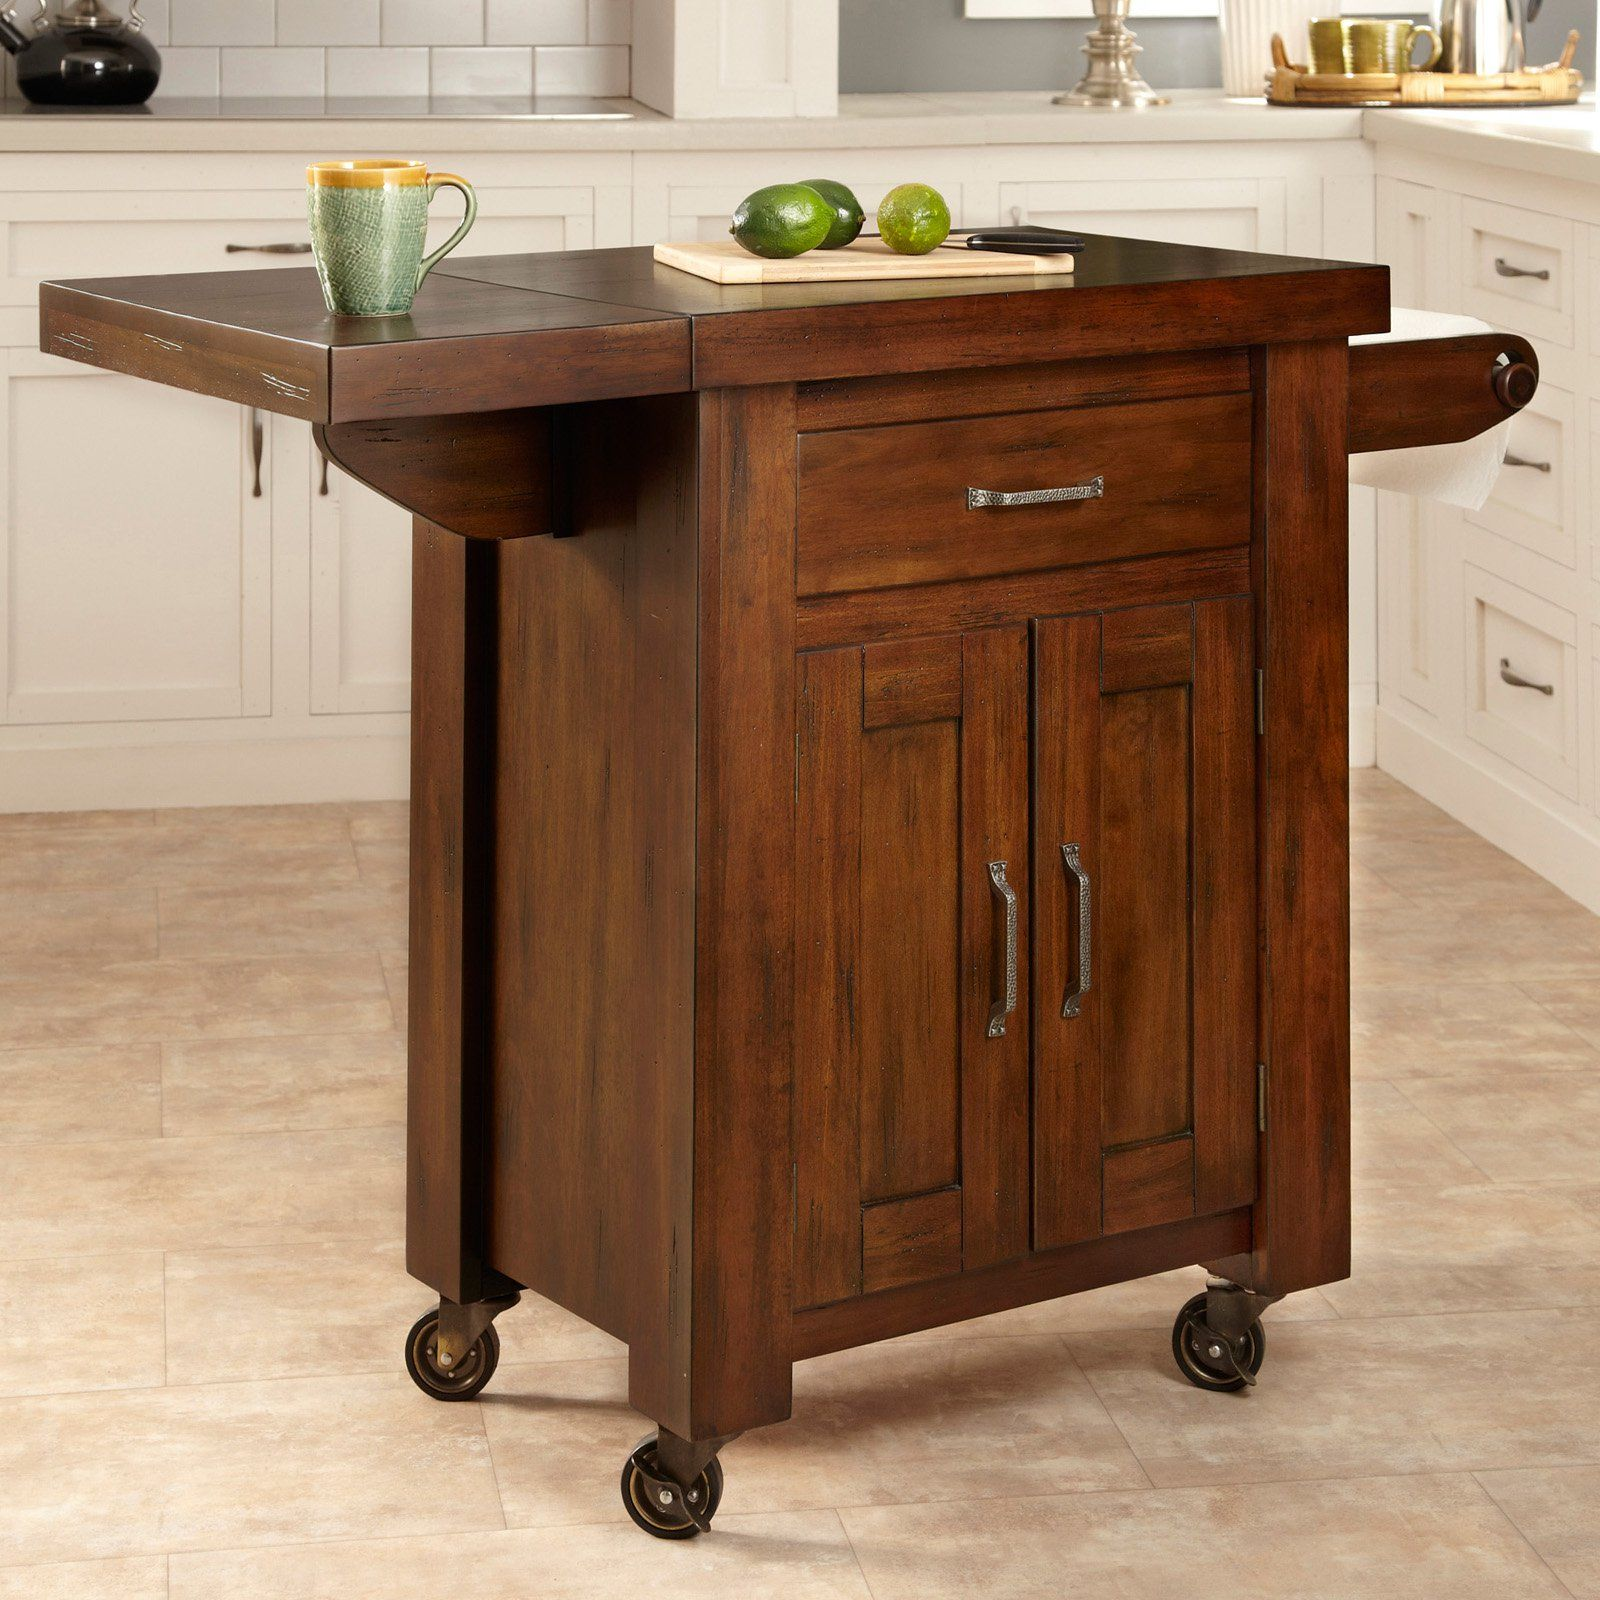 Have To Have Ithome Styles Cabin Creek 1 Drawer Drop Leaf Alluring Small Kitchen Island On Wheels Review